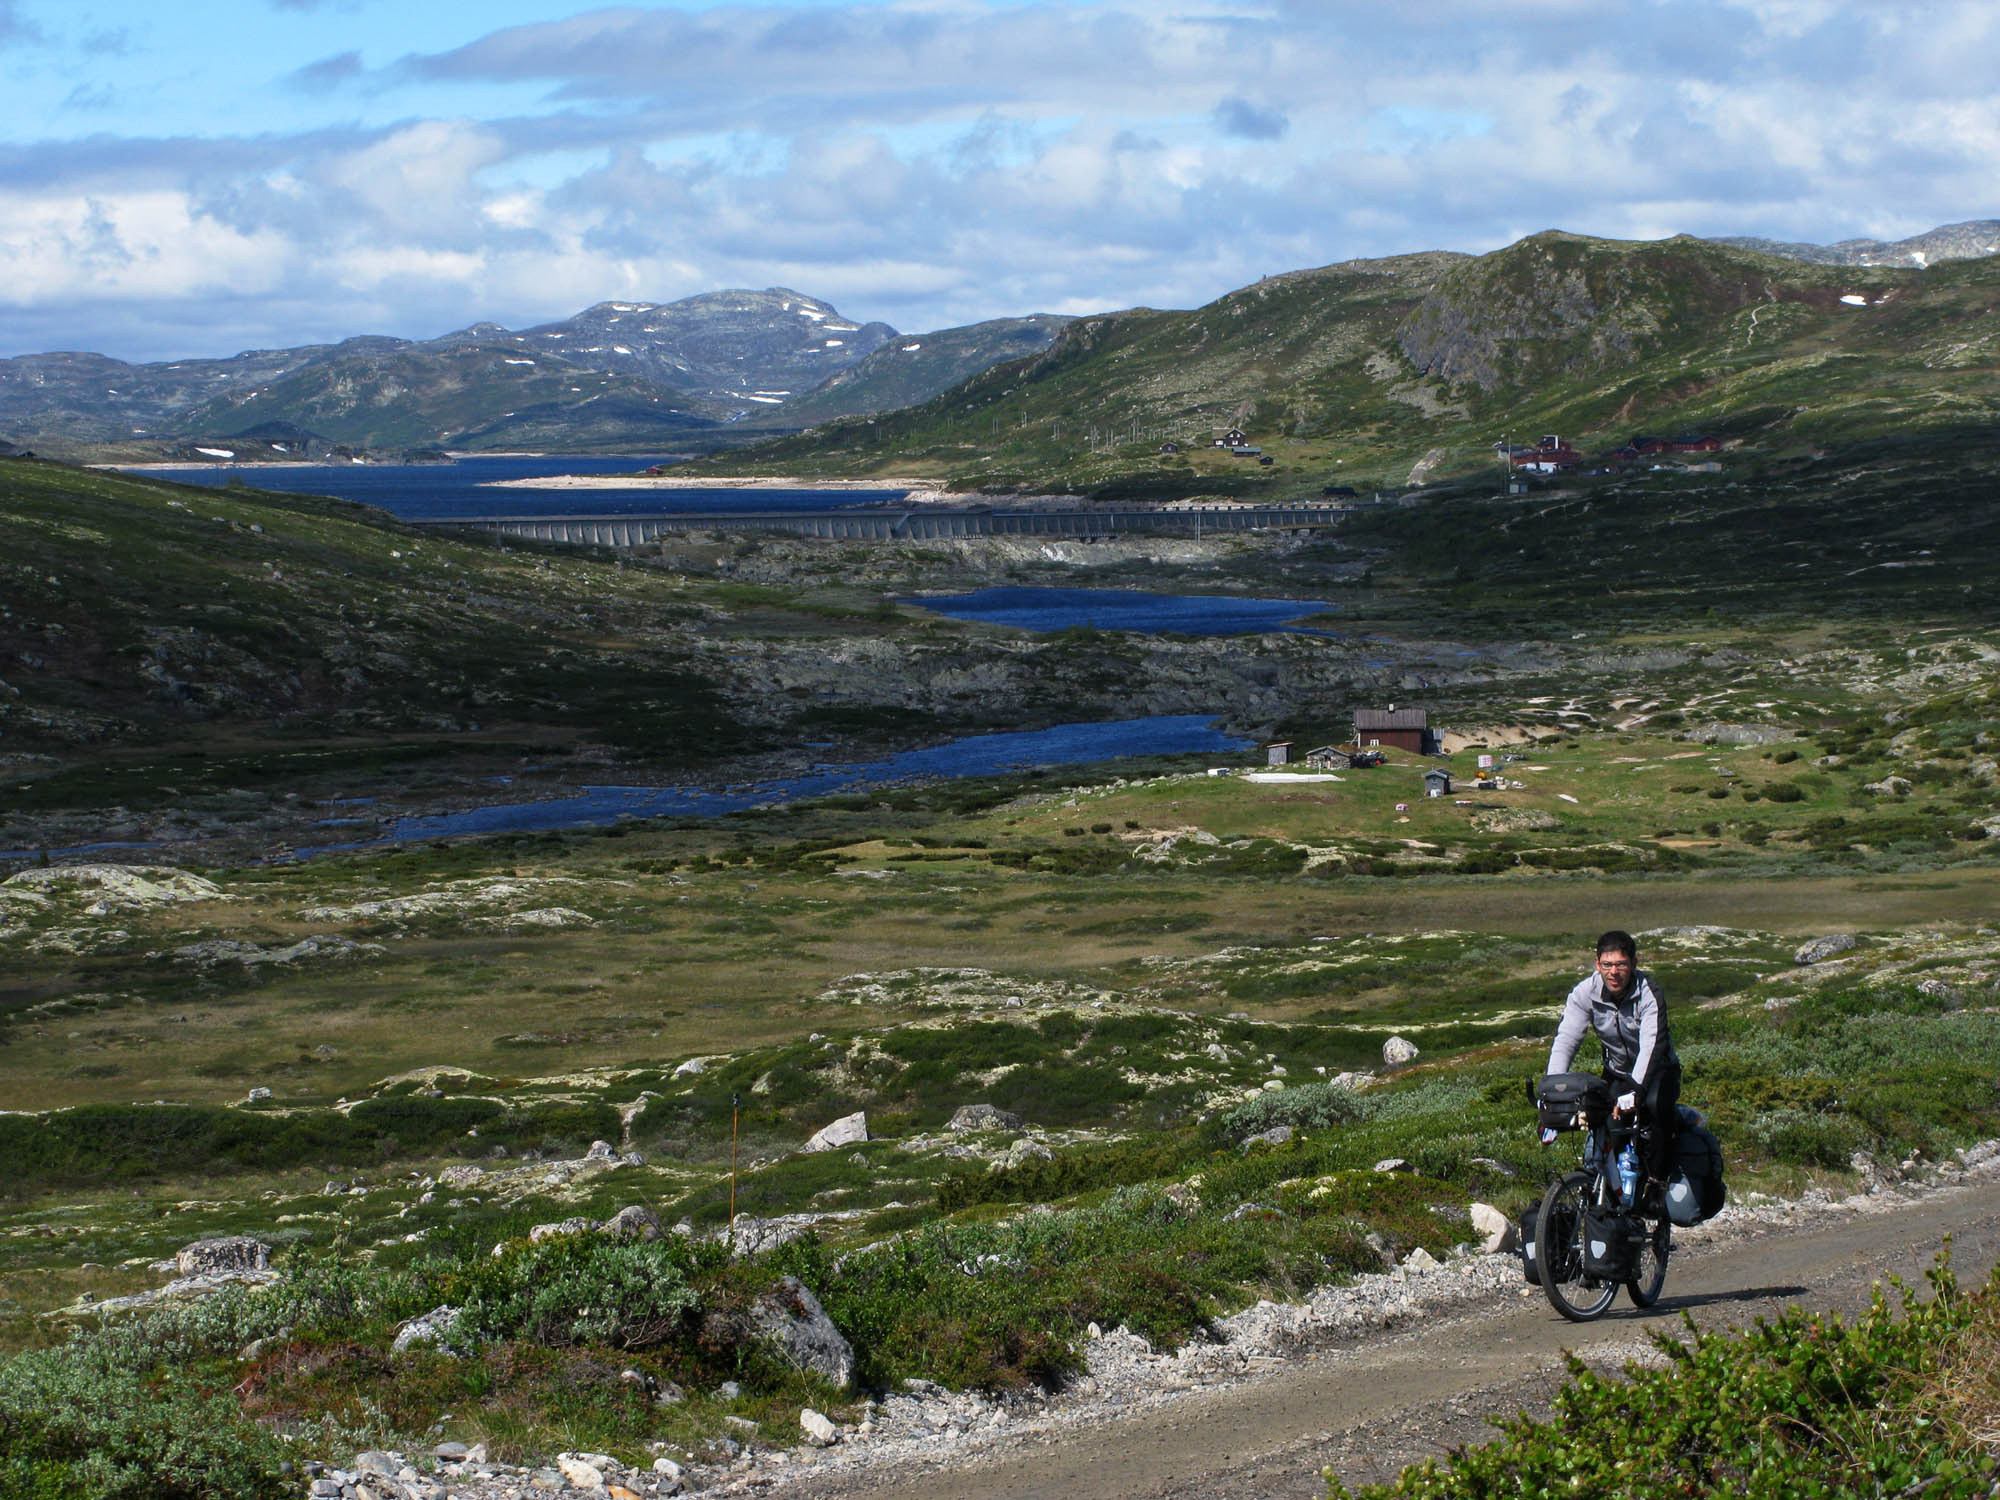 norwegen-hardangervidda-img_3052-small